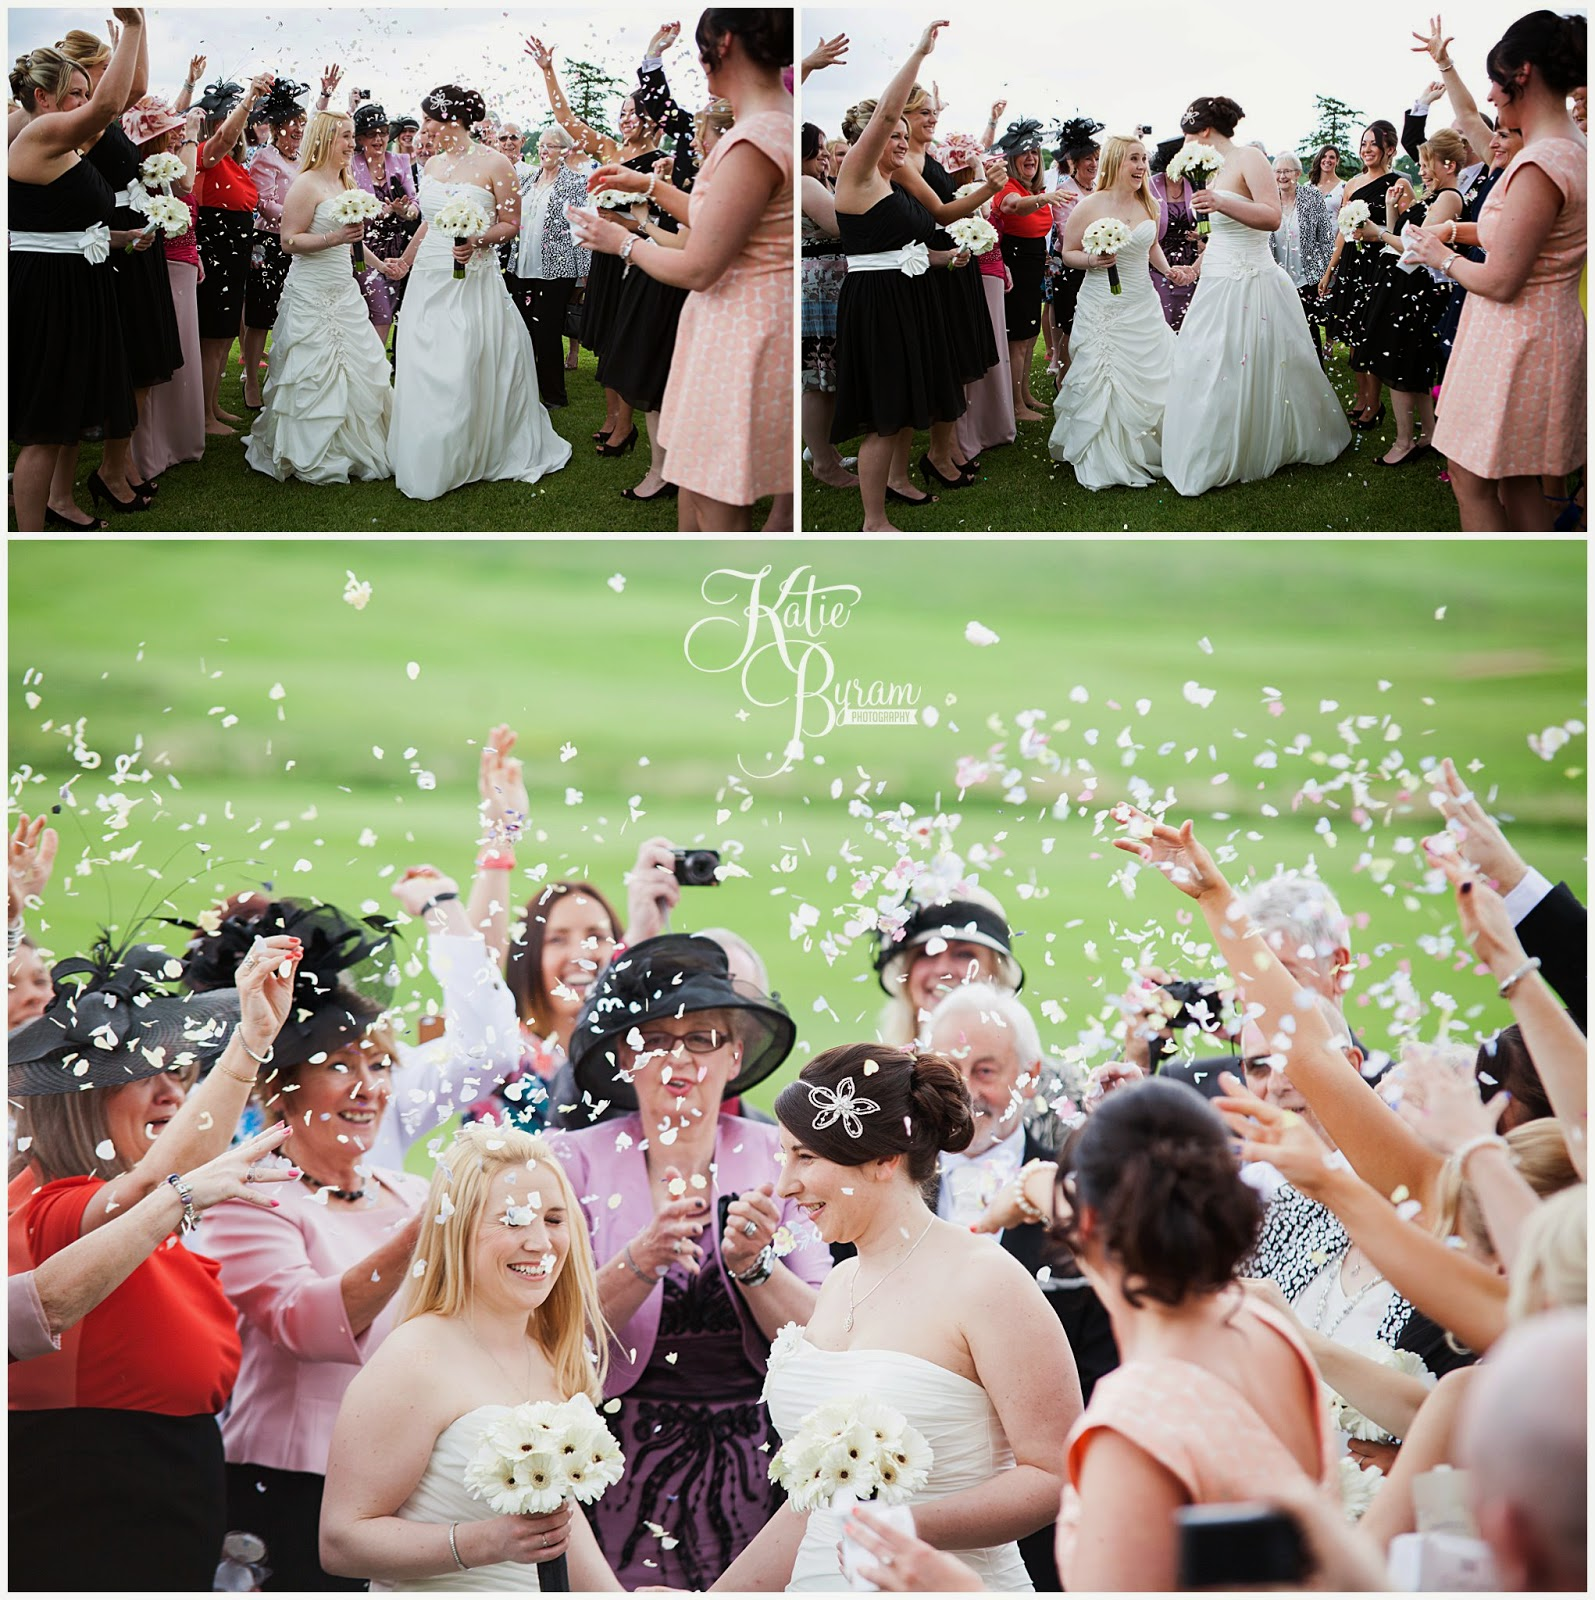 confetti, matfen hall wedding, matfen hall, northumberland wedding, newcastle united wedding, lesbian wedding, two bride wedding, lgbt wedding, gay wedding, civil partnership, powder and pin ups make up, katie byram photography, bride and bride, two weddiing dresses, mao couture bridal, jean hepple florist,